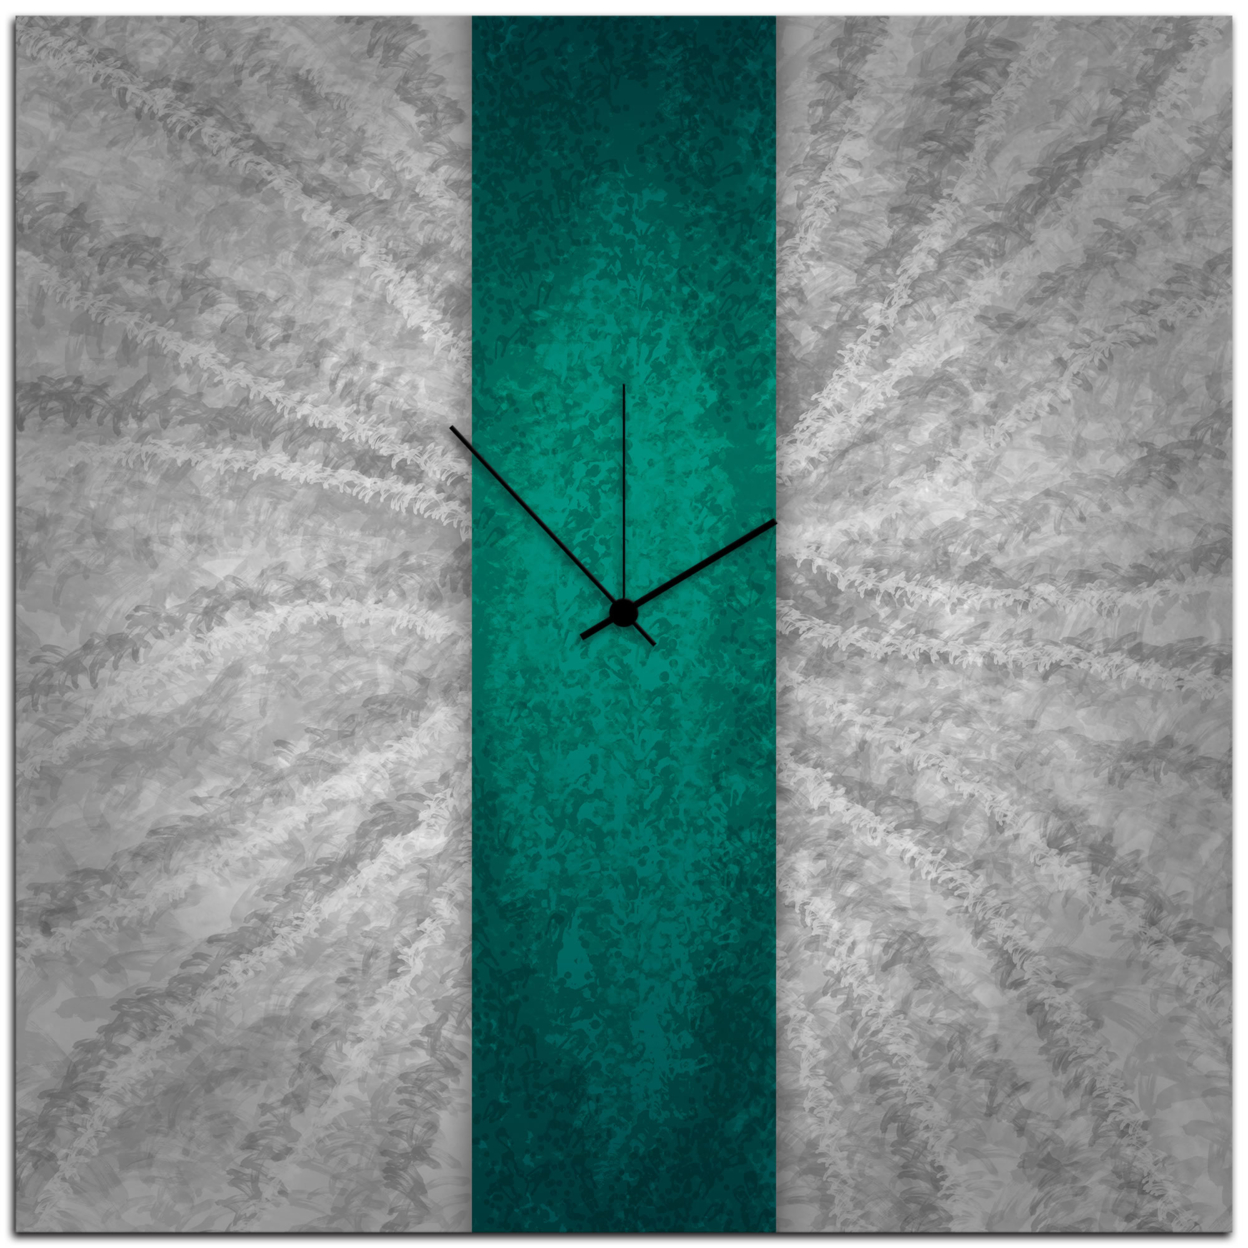 Teal Stripe Clock   Contemporary Turquoise Metal Wall Decor 566a65a98f3d6f58488b59ad